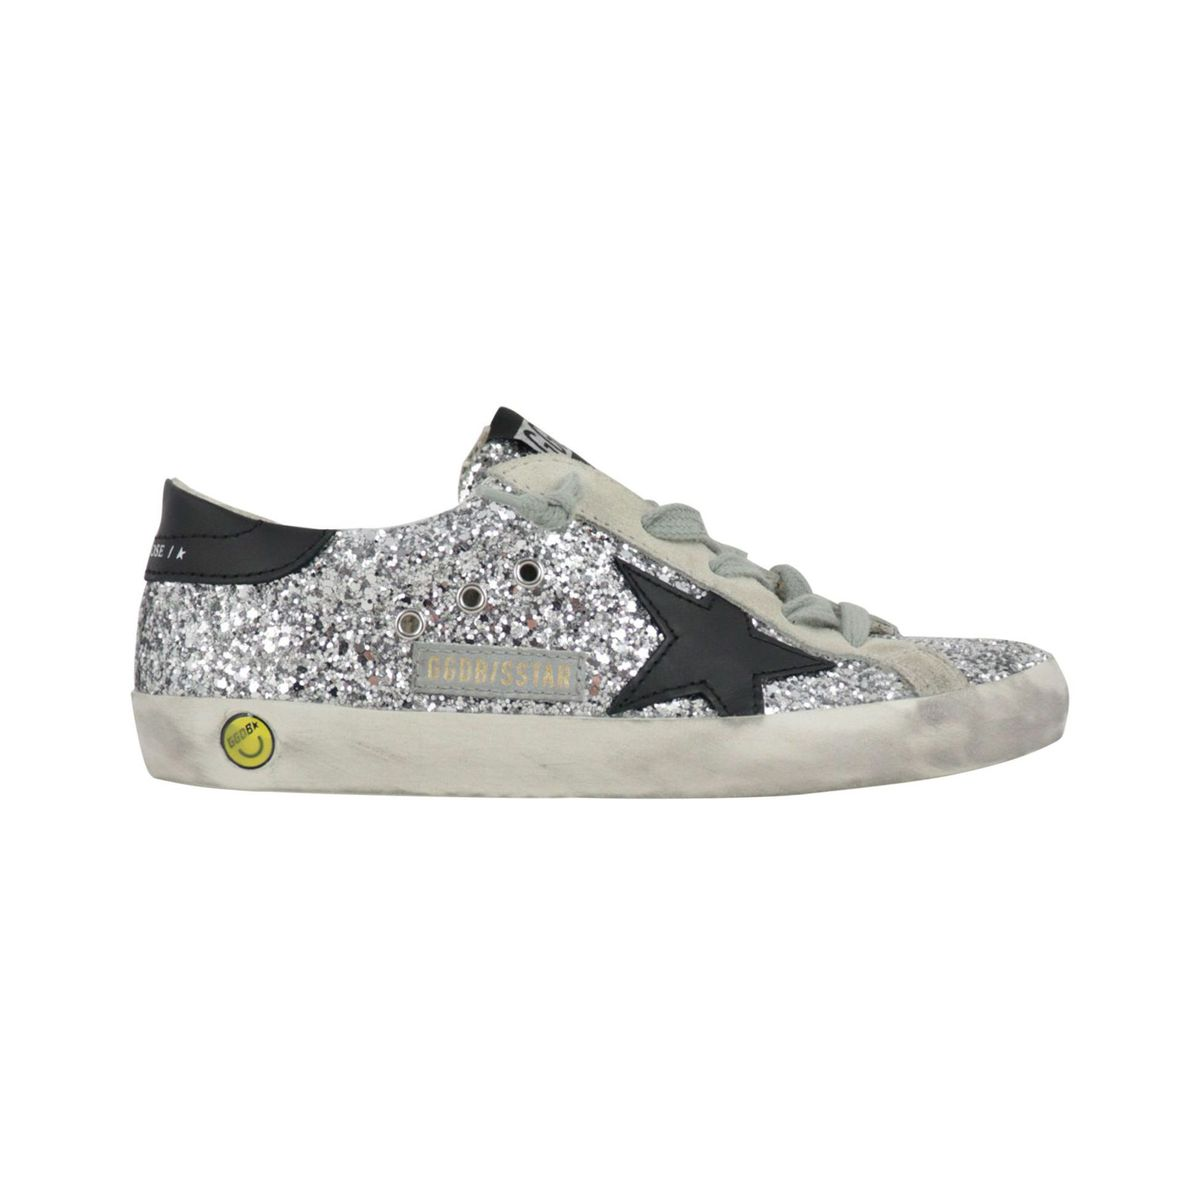 All over glitter leather sneakers with contrasting star White GOLDEN GOOSE